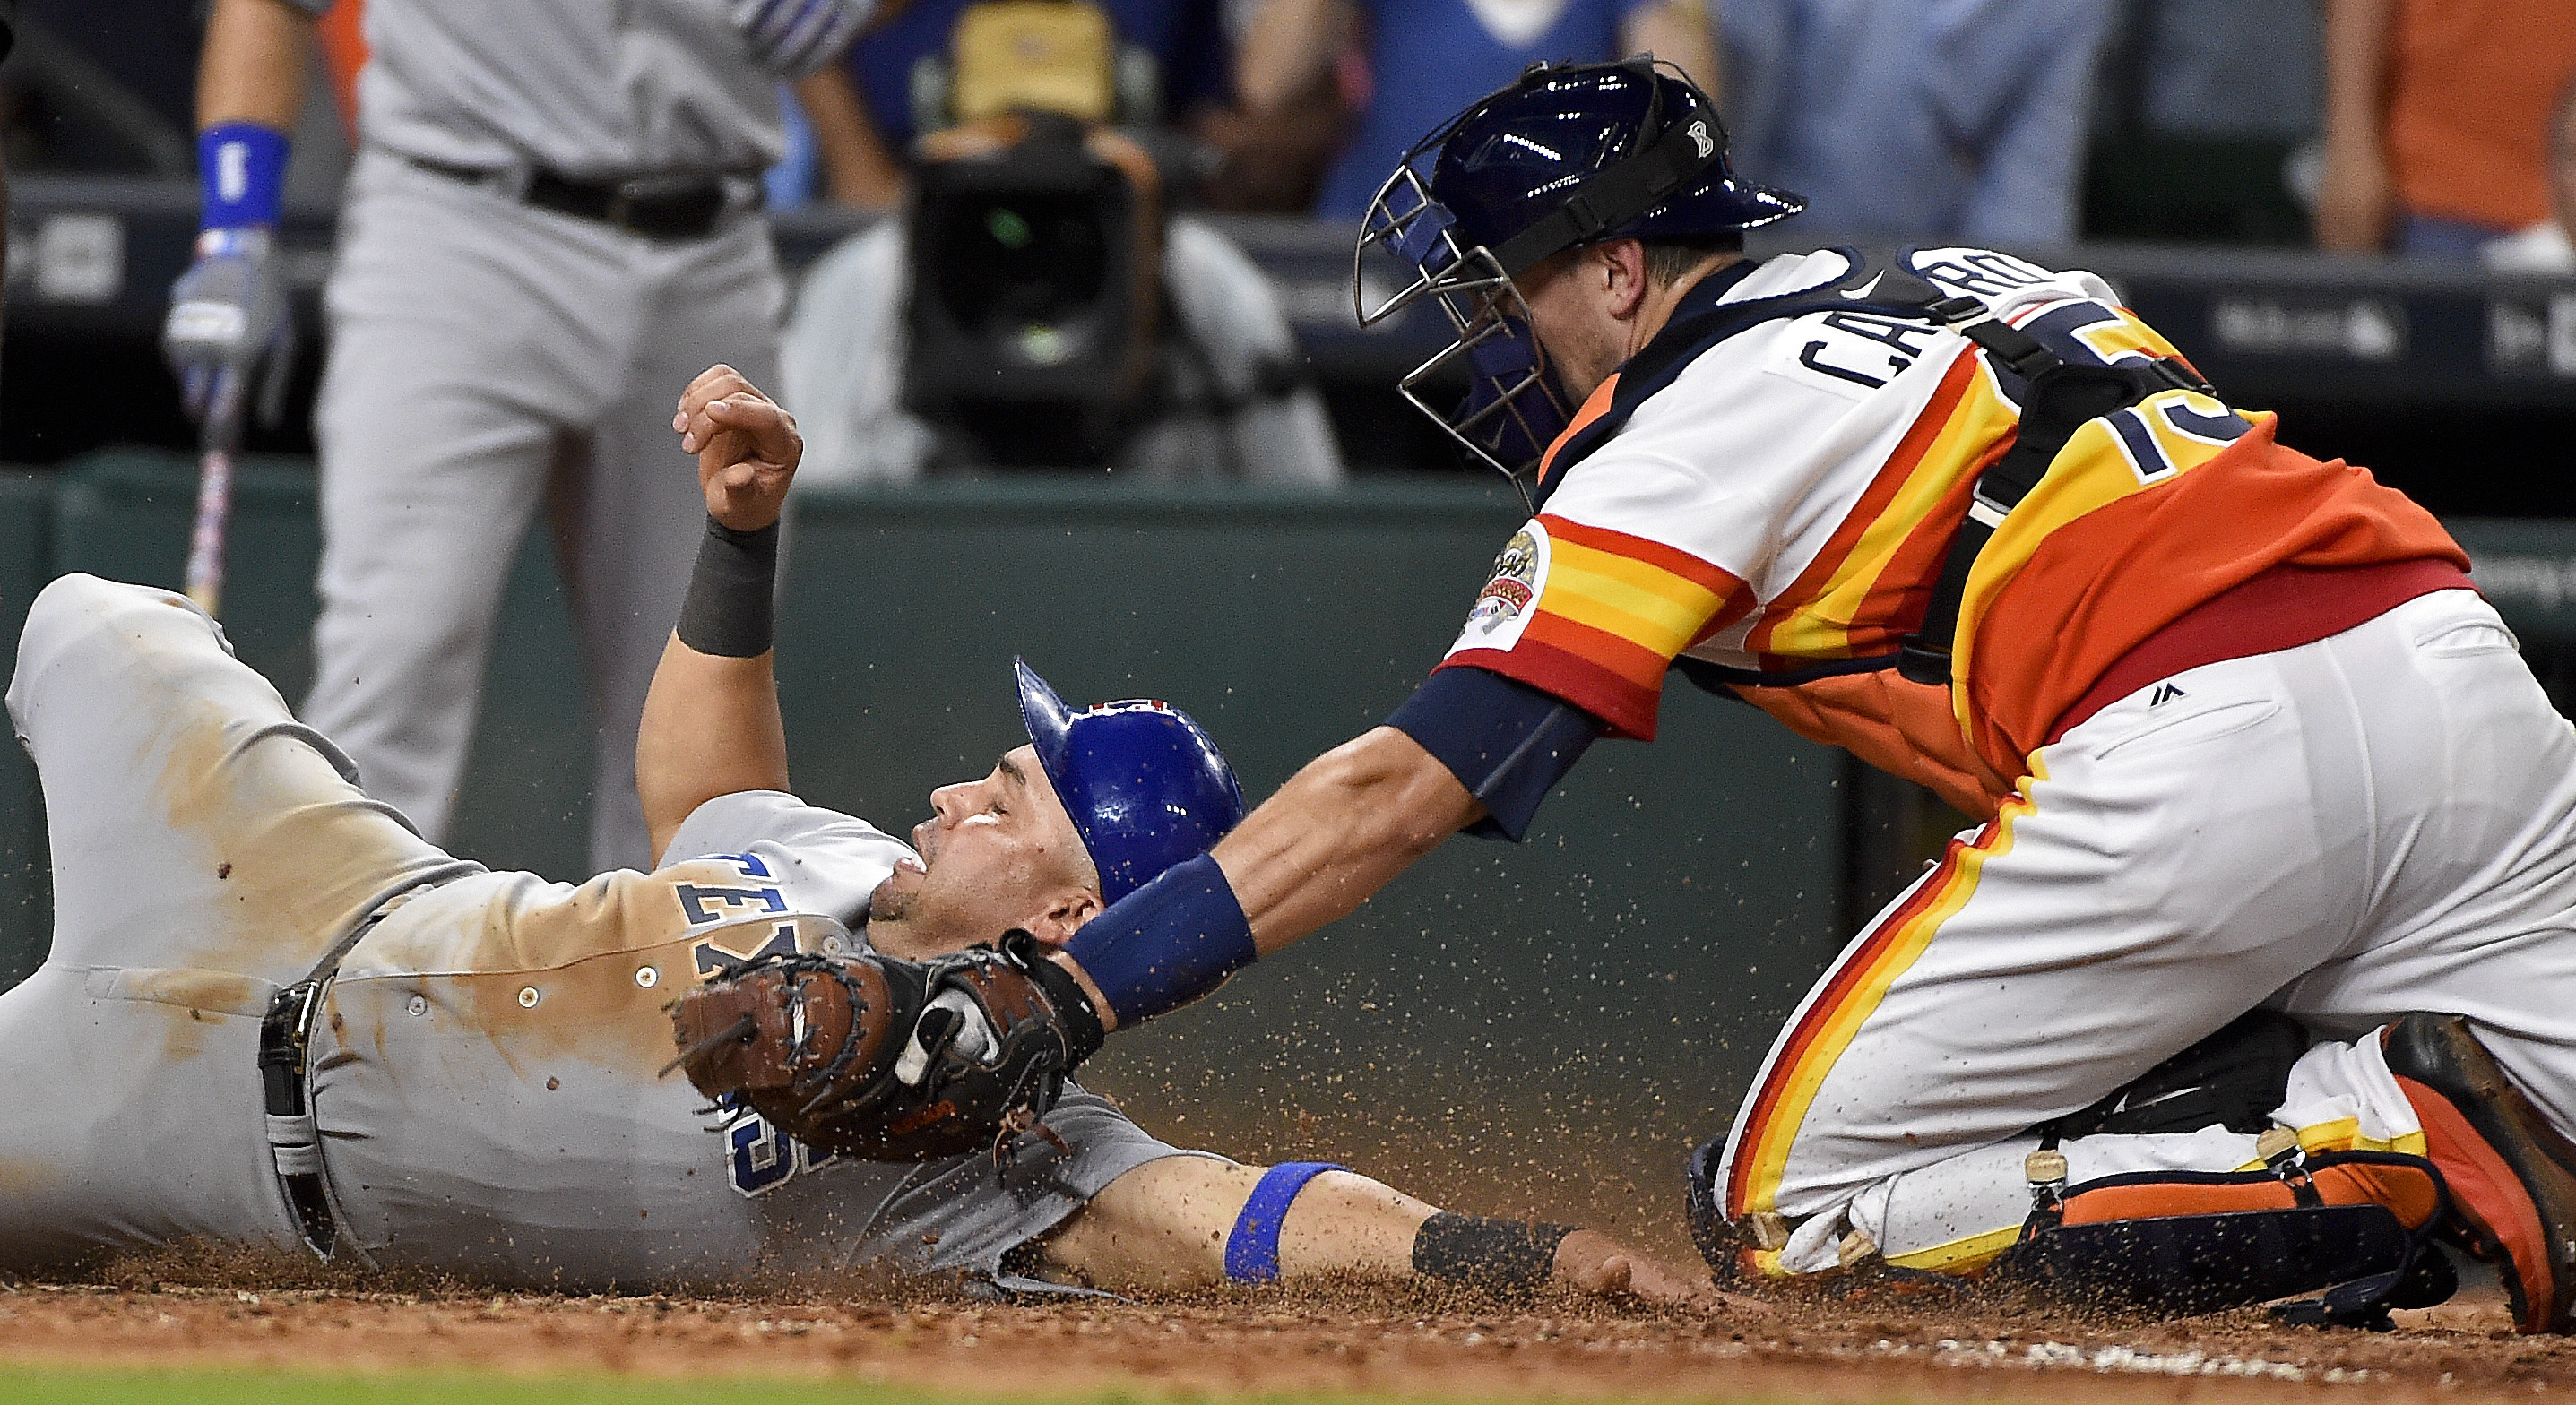 Texas Rangers' Carlos Beltran, left, is tagged out at home by Houston Astros' catcher Jason Castro in the seventh inning of a baseball game, Saturday, Aug. 6, 2016, in Houston. (AP Photo/Eric Christian Smith)